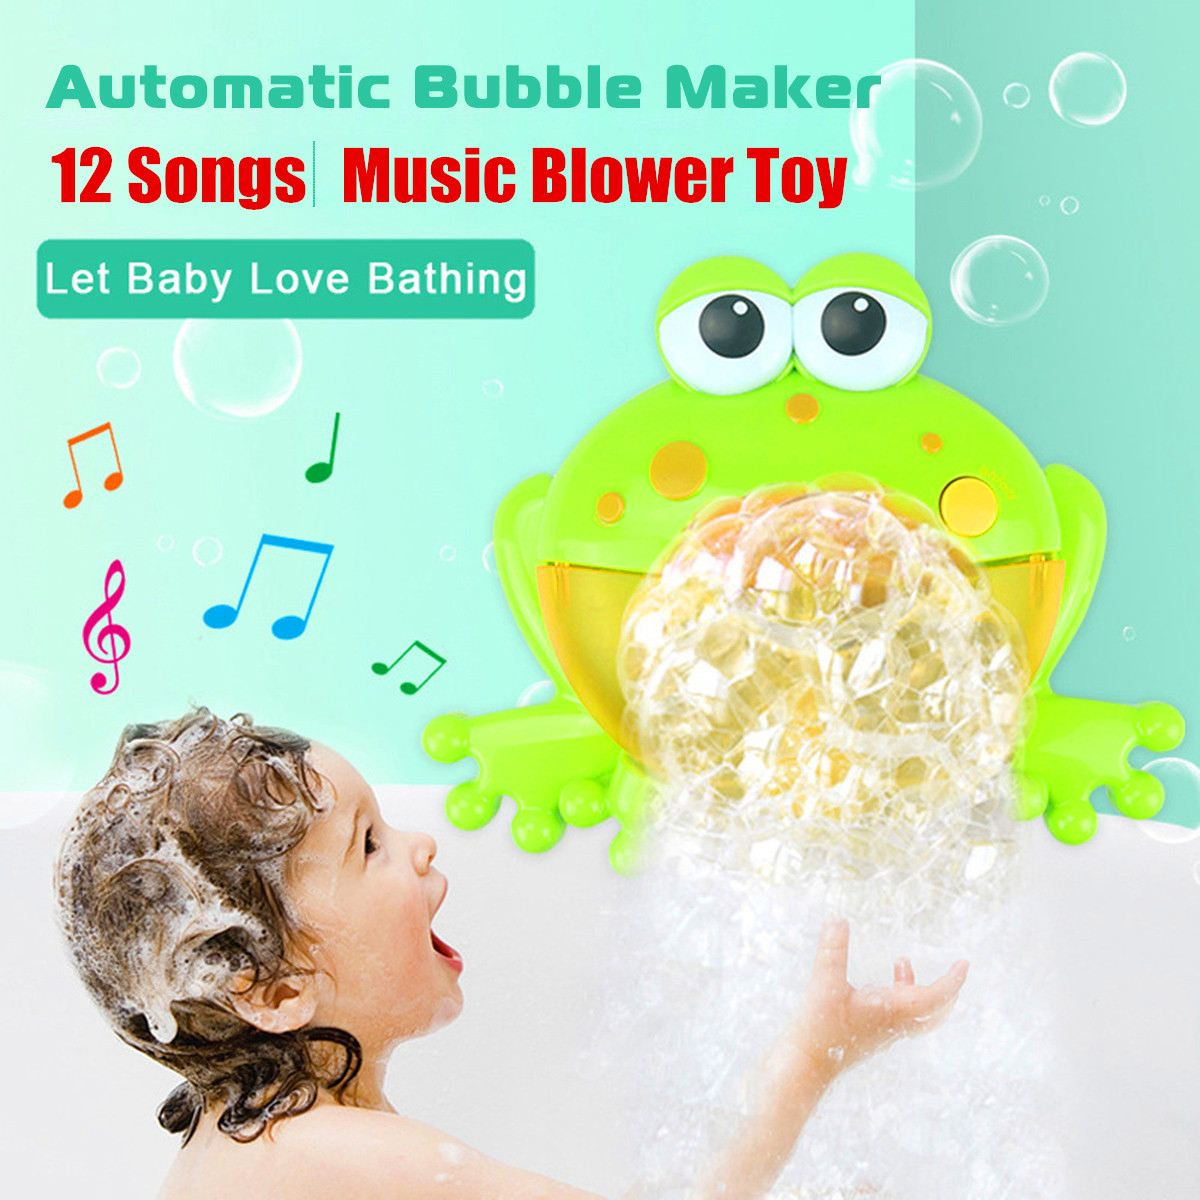 Baby Bath Toy Bubble Frogs Crab Machine Automatic Blower Maker Bath Music Toy Outdoor Bathtub Soap Machine Toy for Kids Children